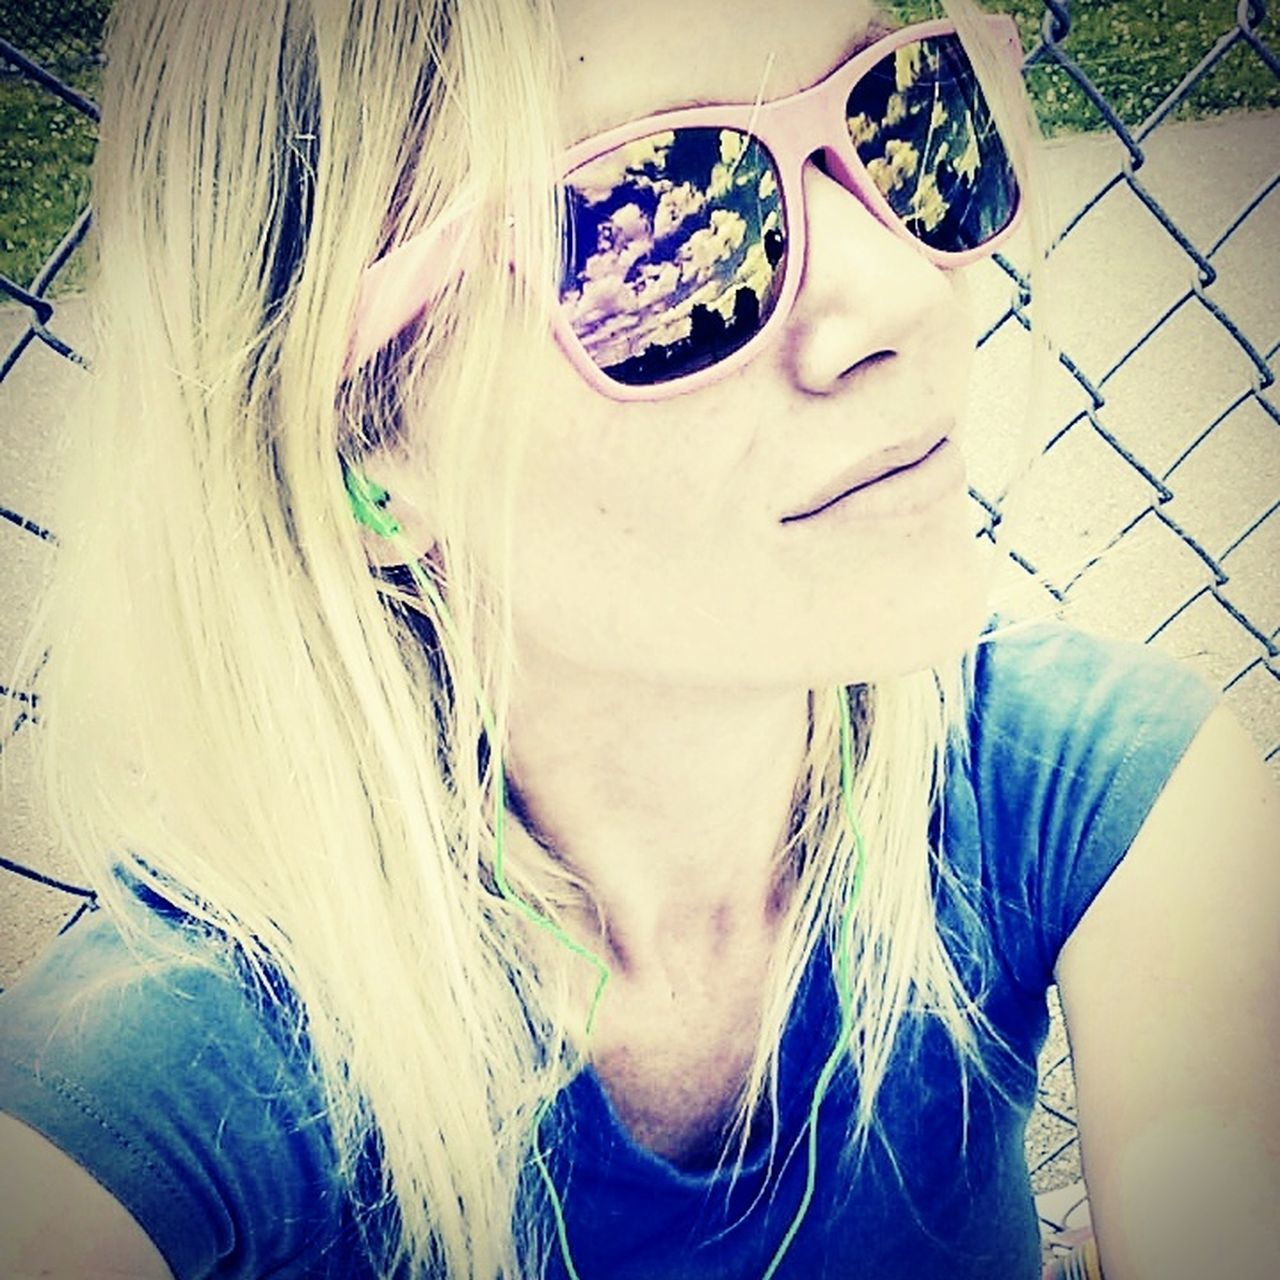 sunglasses, one person, portrait, young adult, real people, headshot, young women, blond hair, close-up, looking at camera, lifestyles, day, outdoors, people